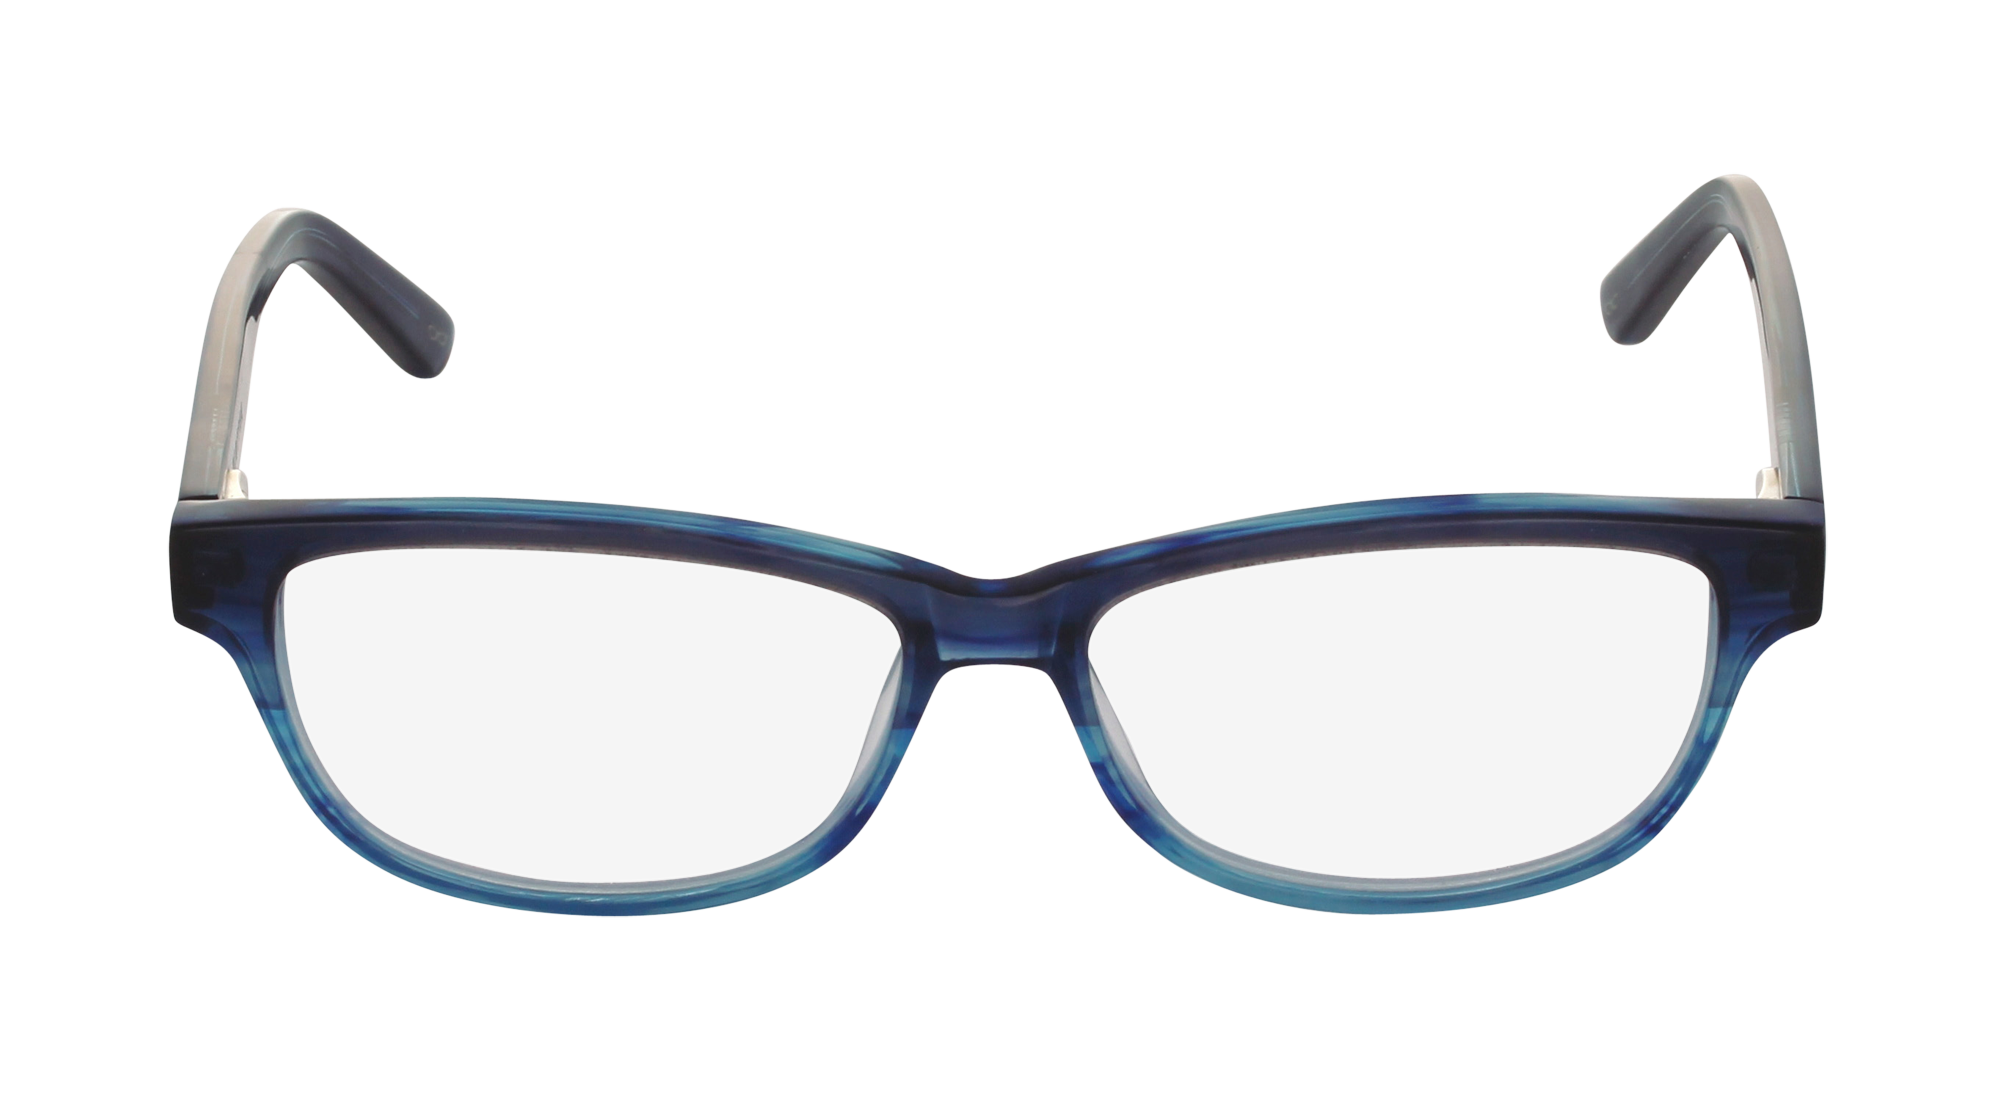 Clipart sunglasses picart. Png images download free